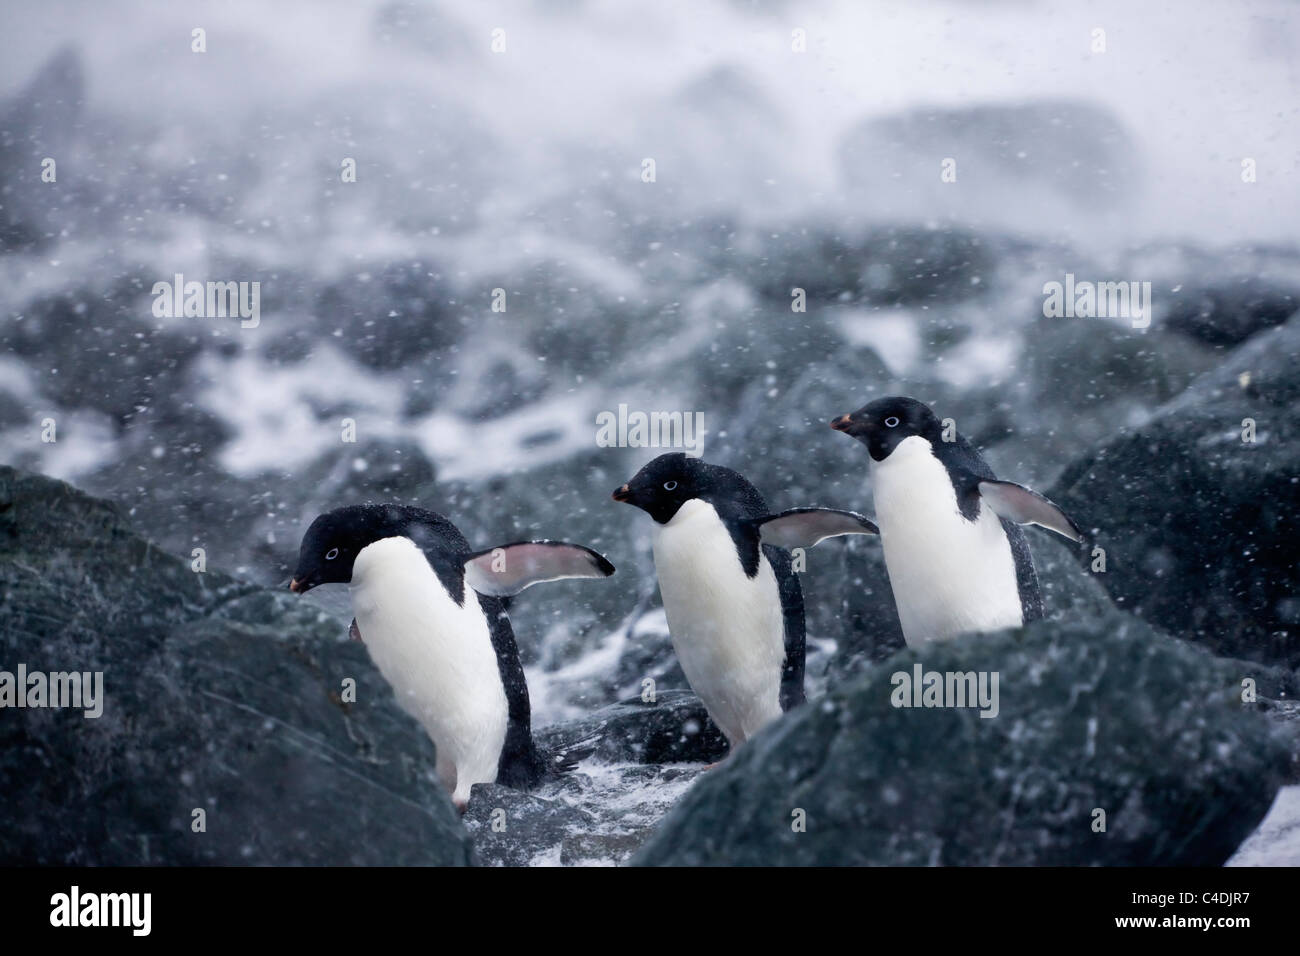 3 Adelie penguins march in unison on rocky beach in white-out snow storm during windy antarctic blizzard South Orkney - Stock Image